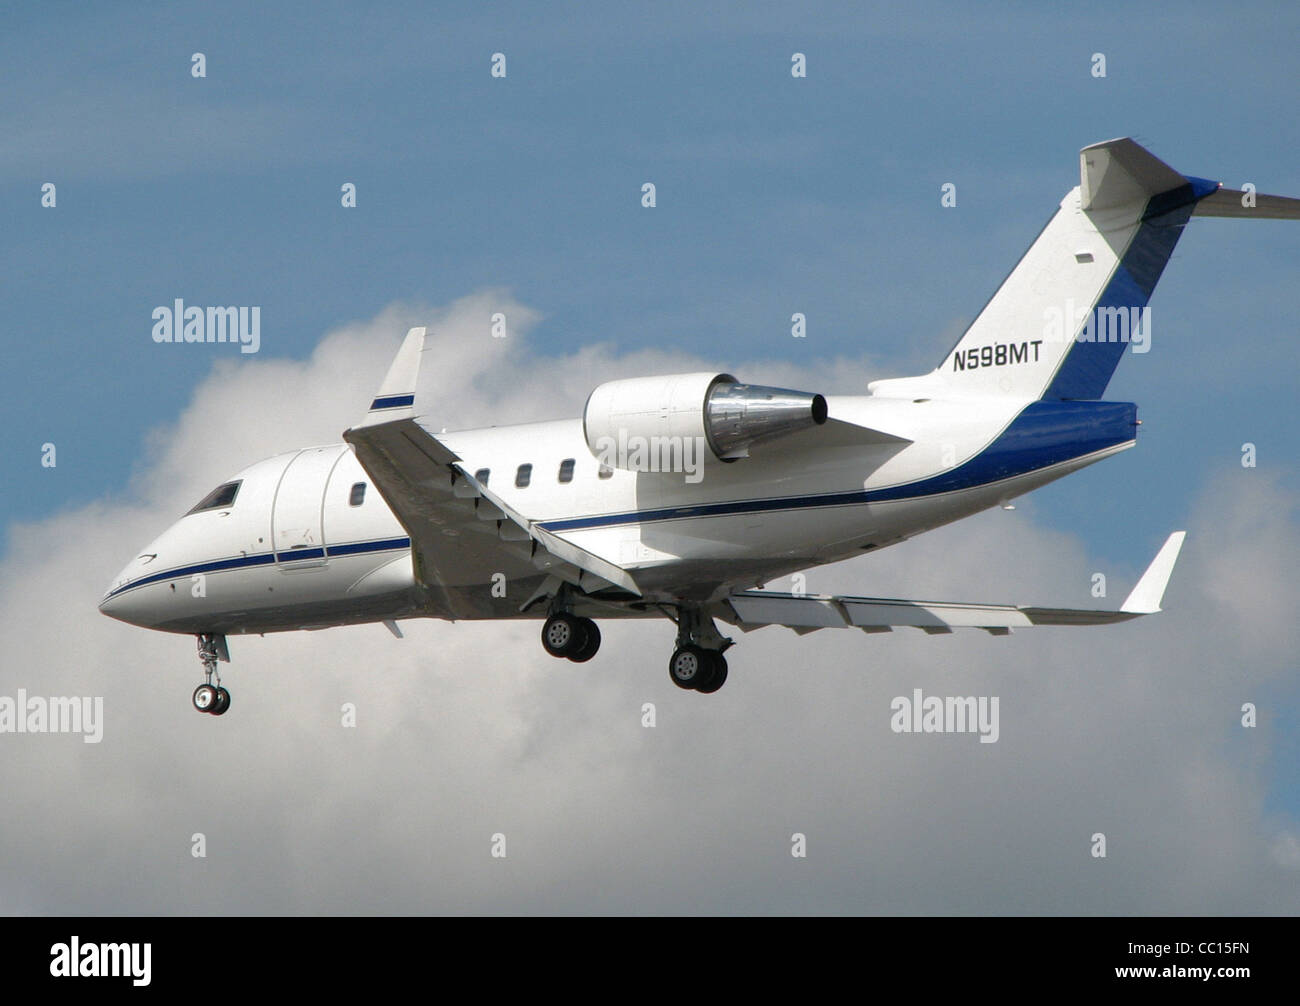 Bombardier CL-600 business jet (US registration N598MT) at London Heathrow Airport, England - Stock Image